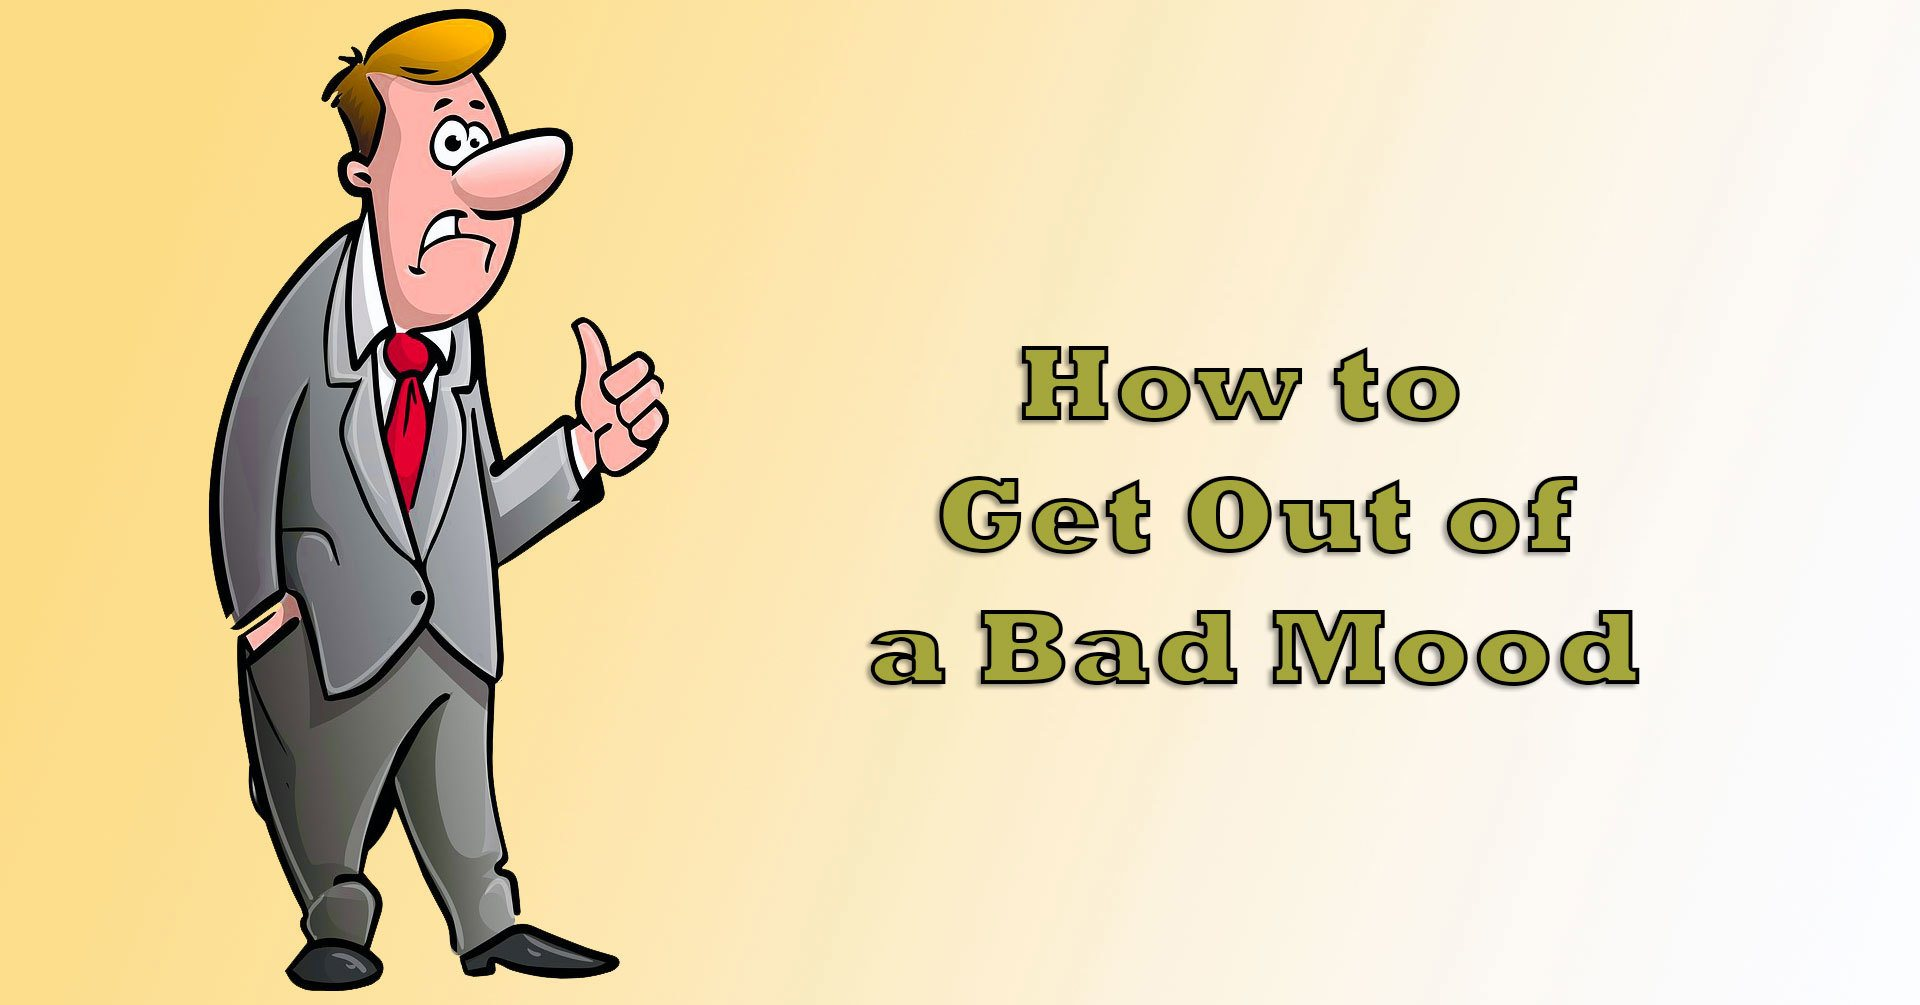 3 Fast Ways to Get Out of a Bad Mood